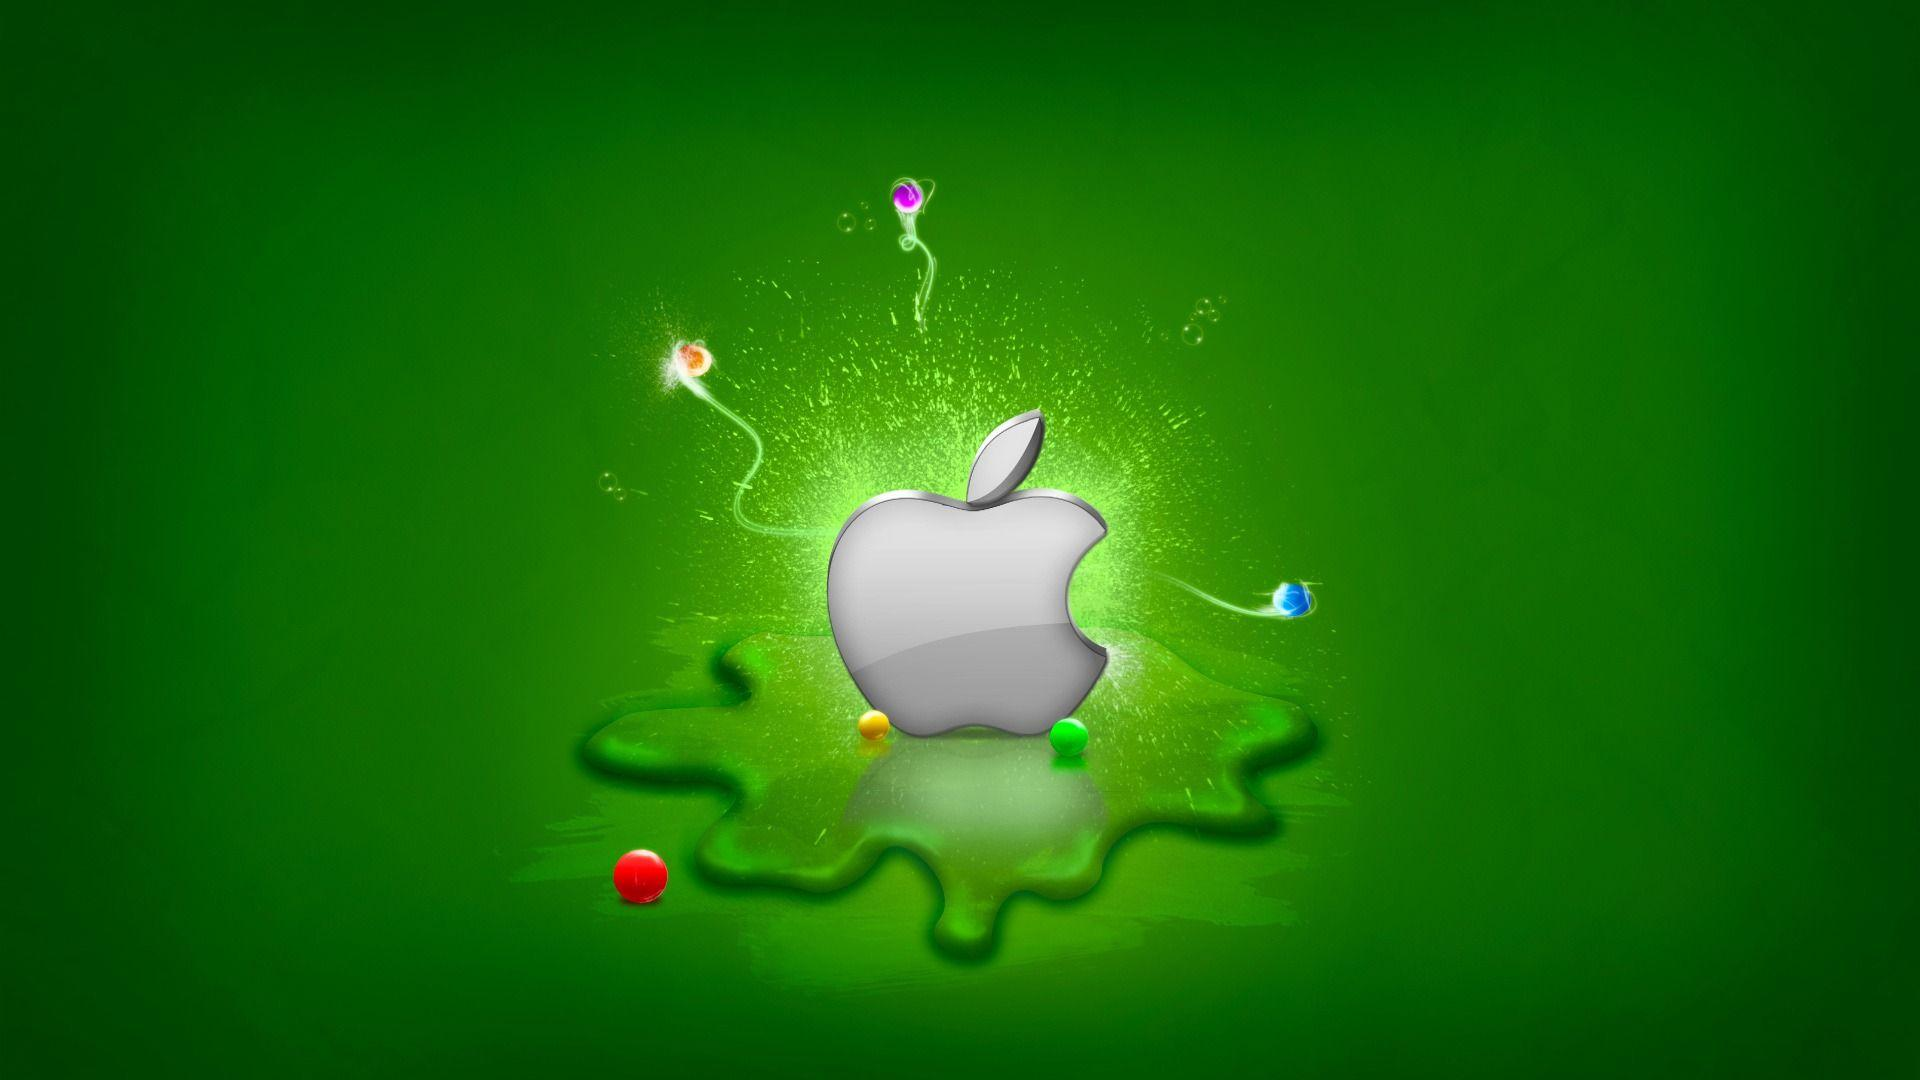 Apple 3D Wallpapers - Wallpaper Cave